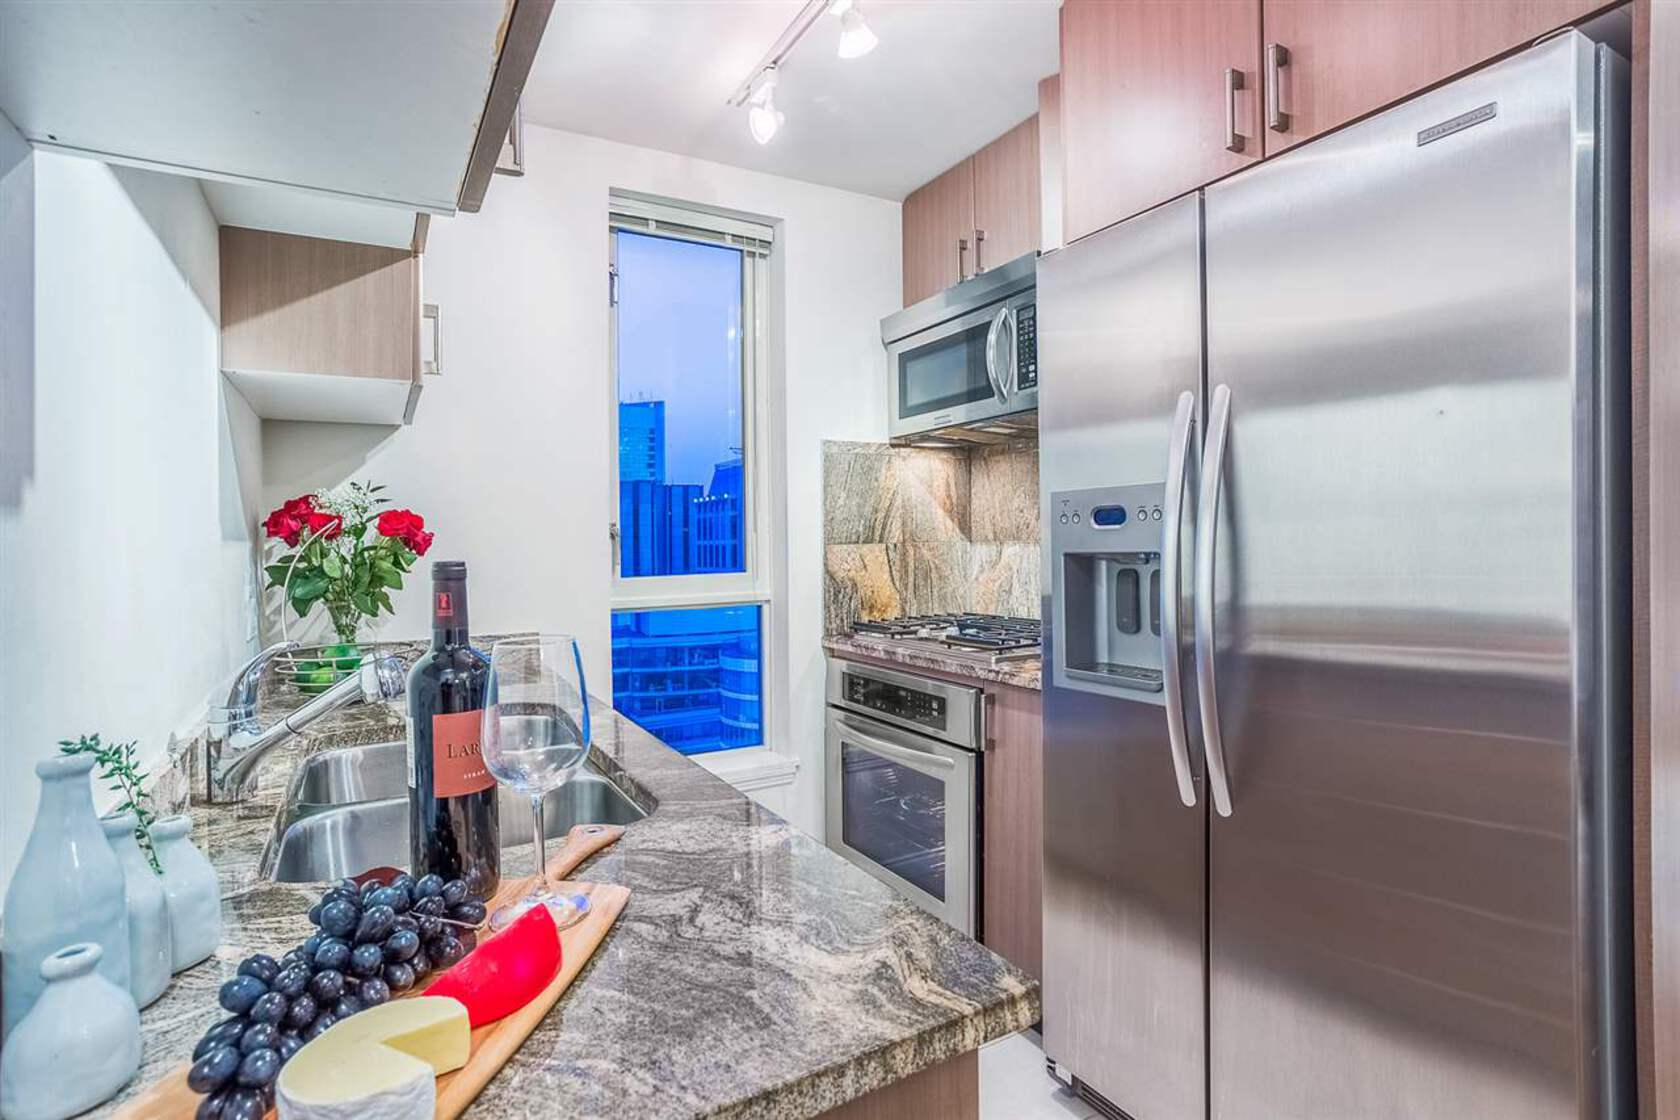 262190569-4 at 34th floor - 1211 Melville , Coal Harbour, Vancouver West